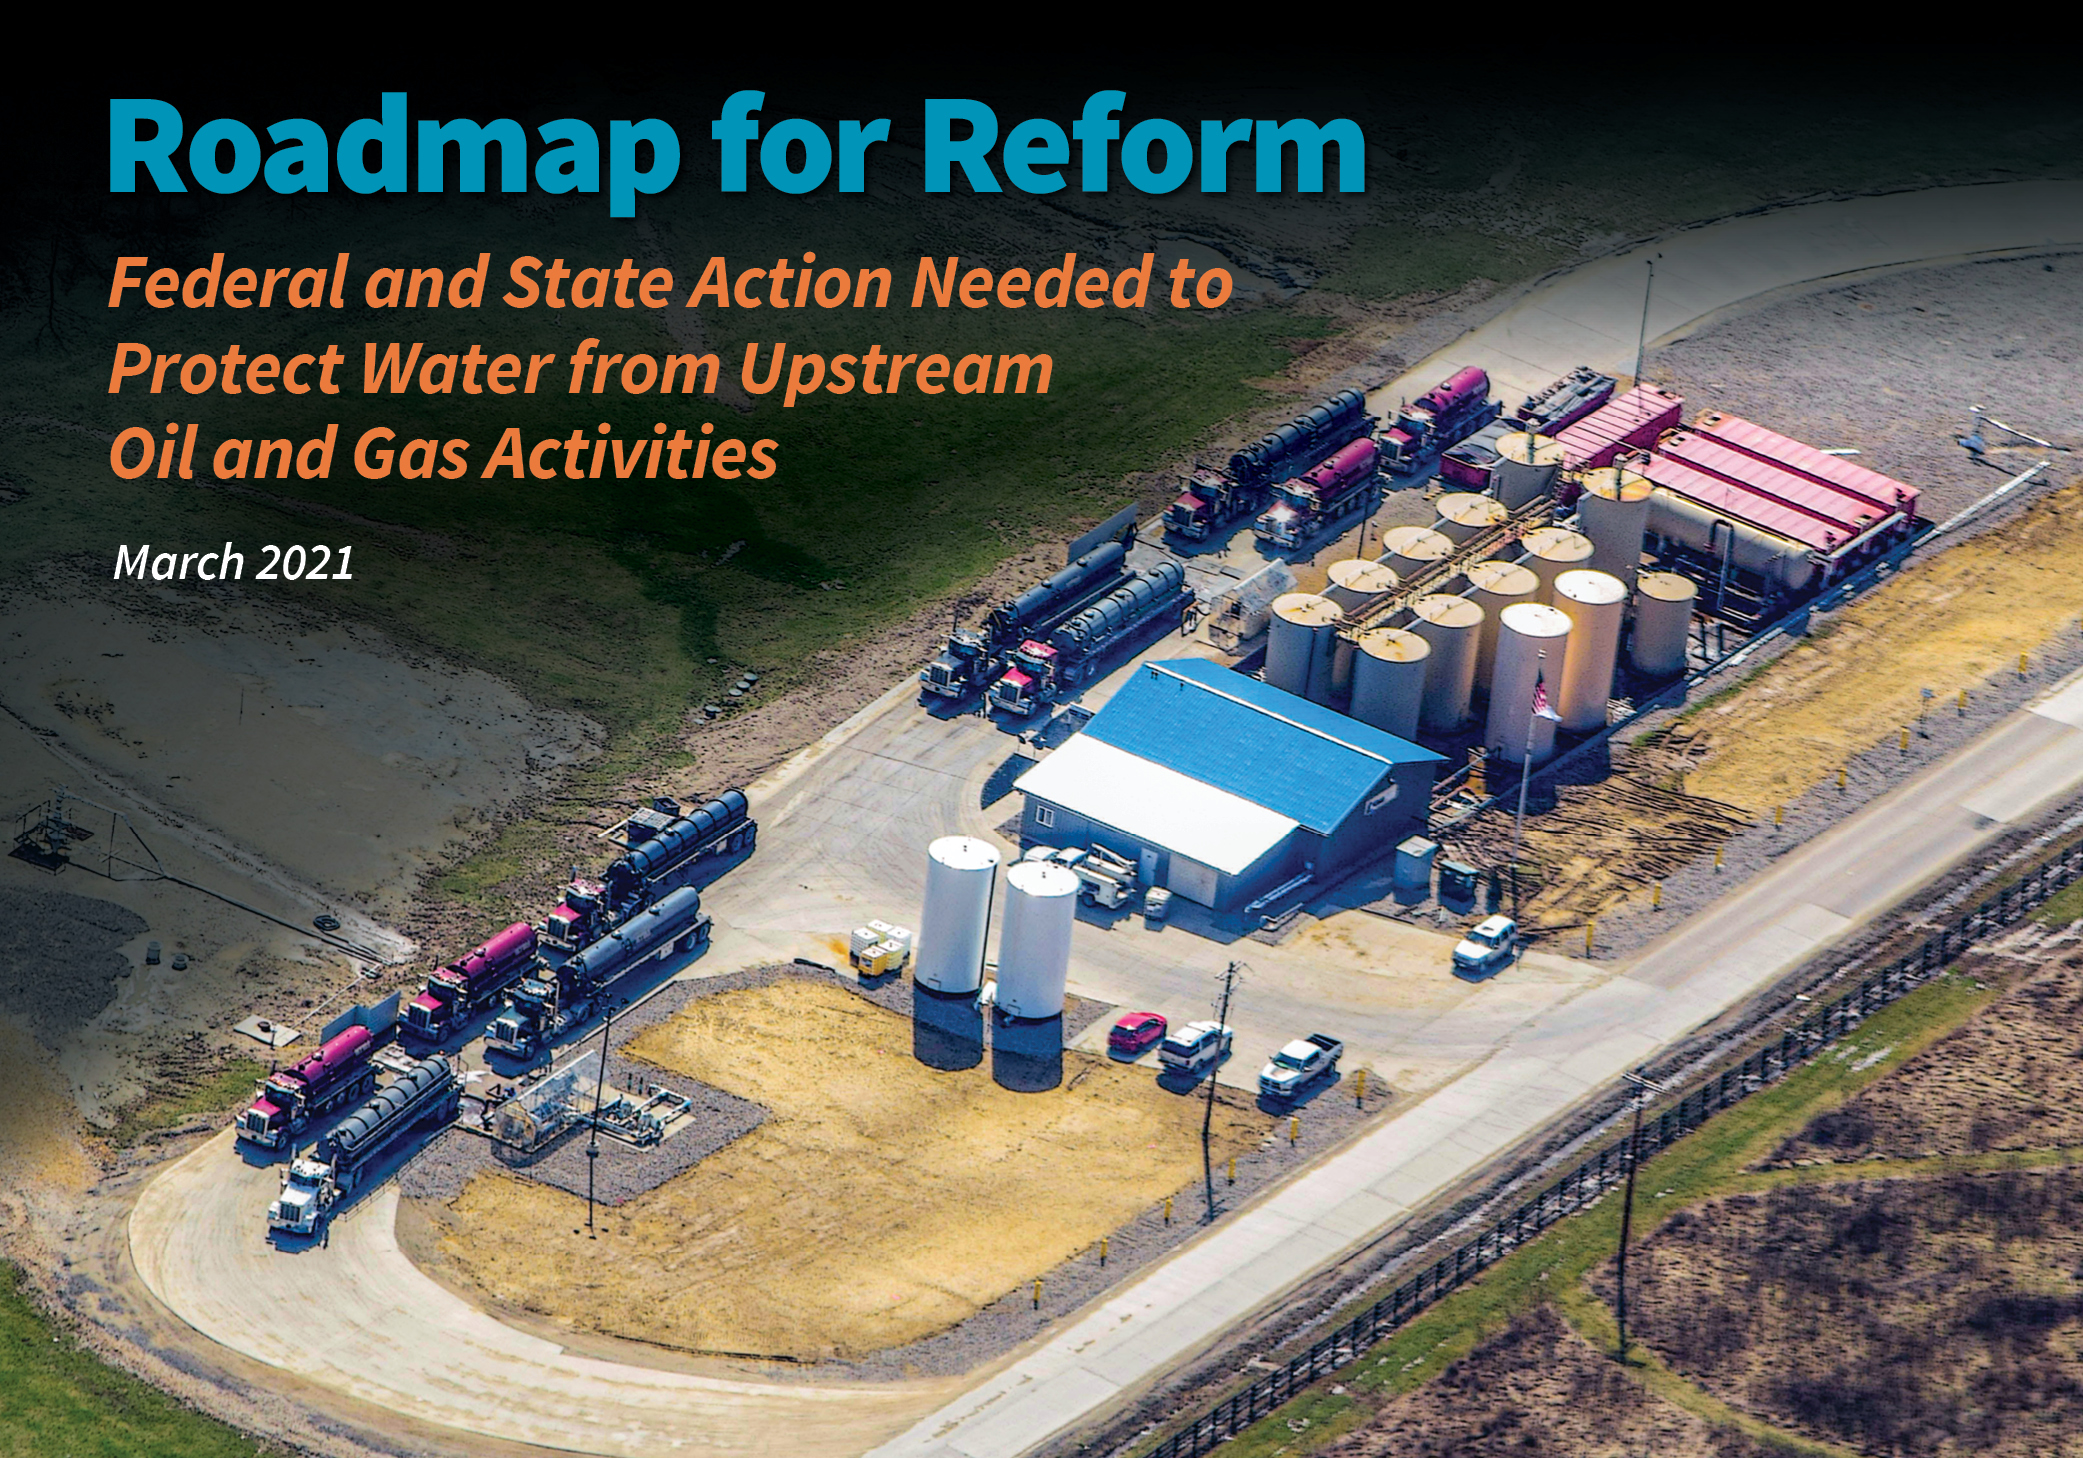 Roadmap to Reform Report cover image